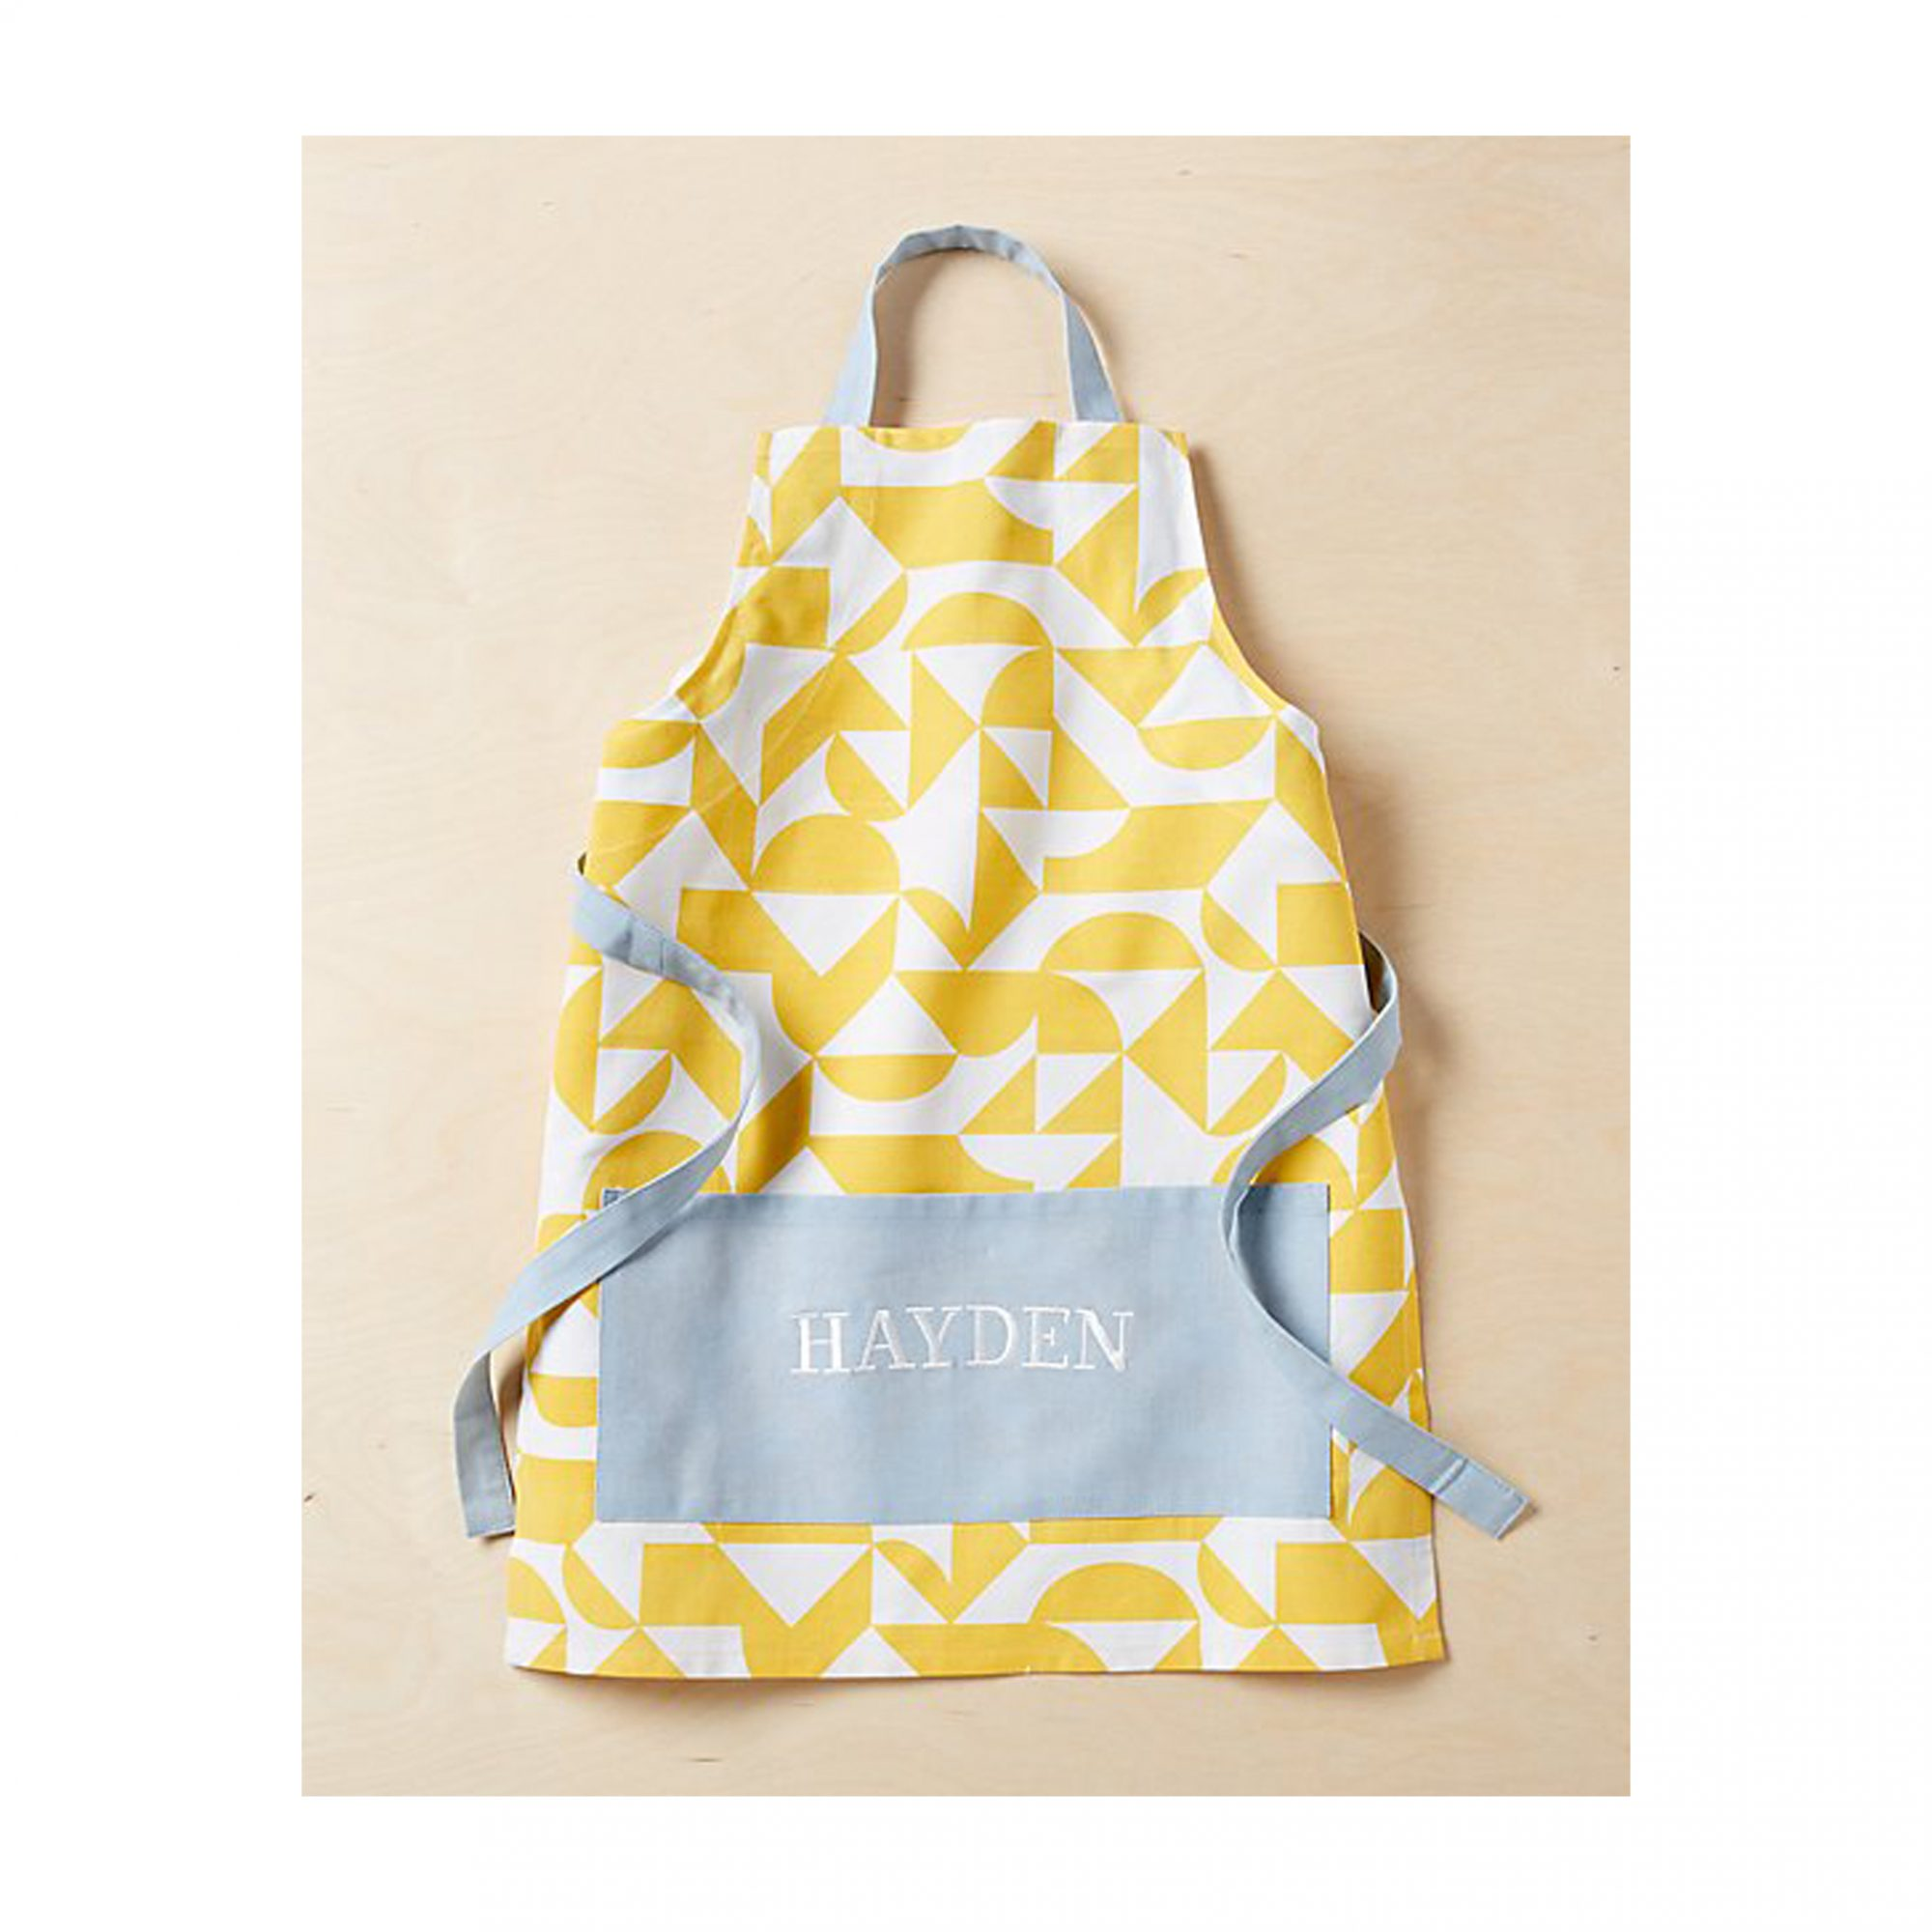 Cheap Christmas Gifts for Kids: Crate and Barrel Yellow Geometric Kids' Apron